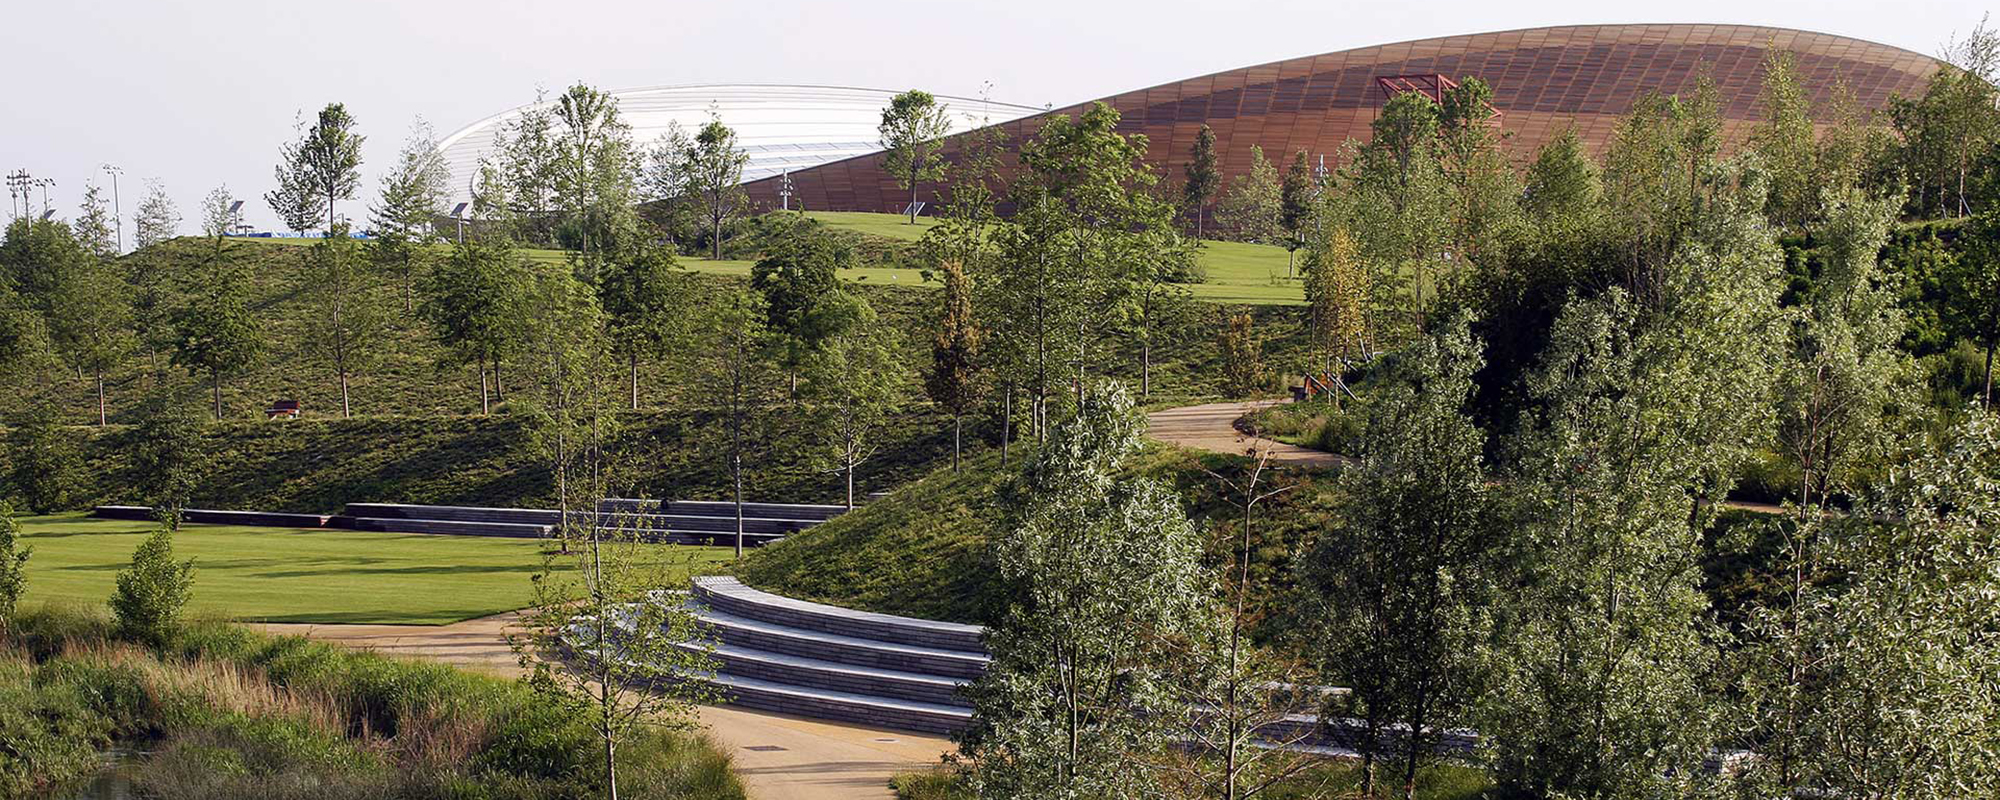 Green is not garnish: We need a radical public-space revolution with landscape at its heart